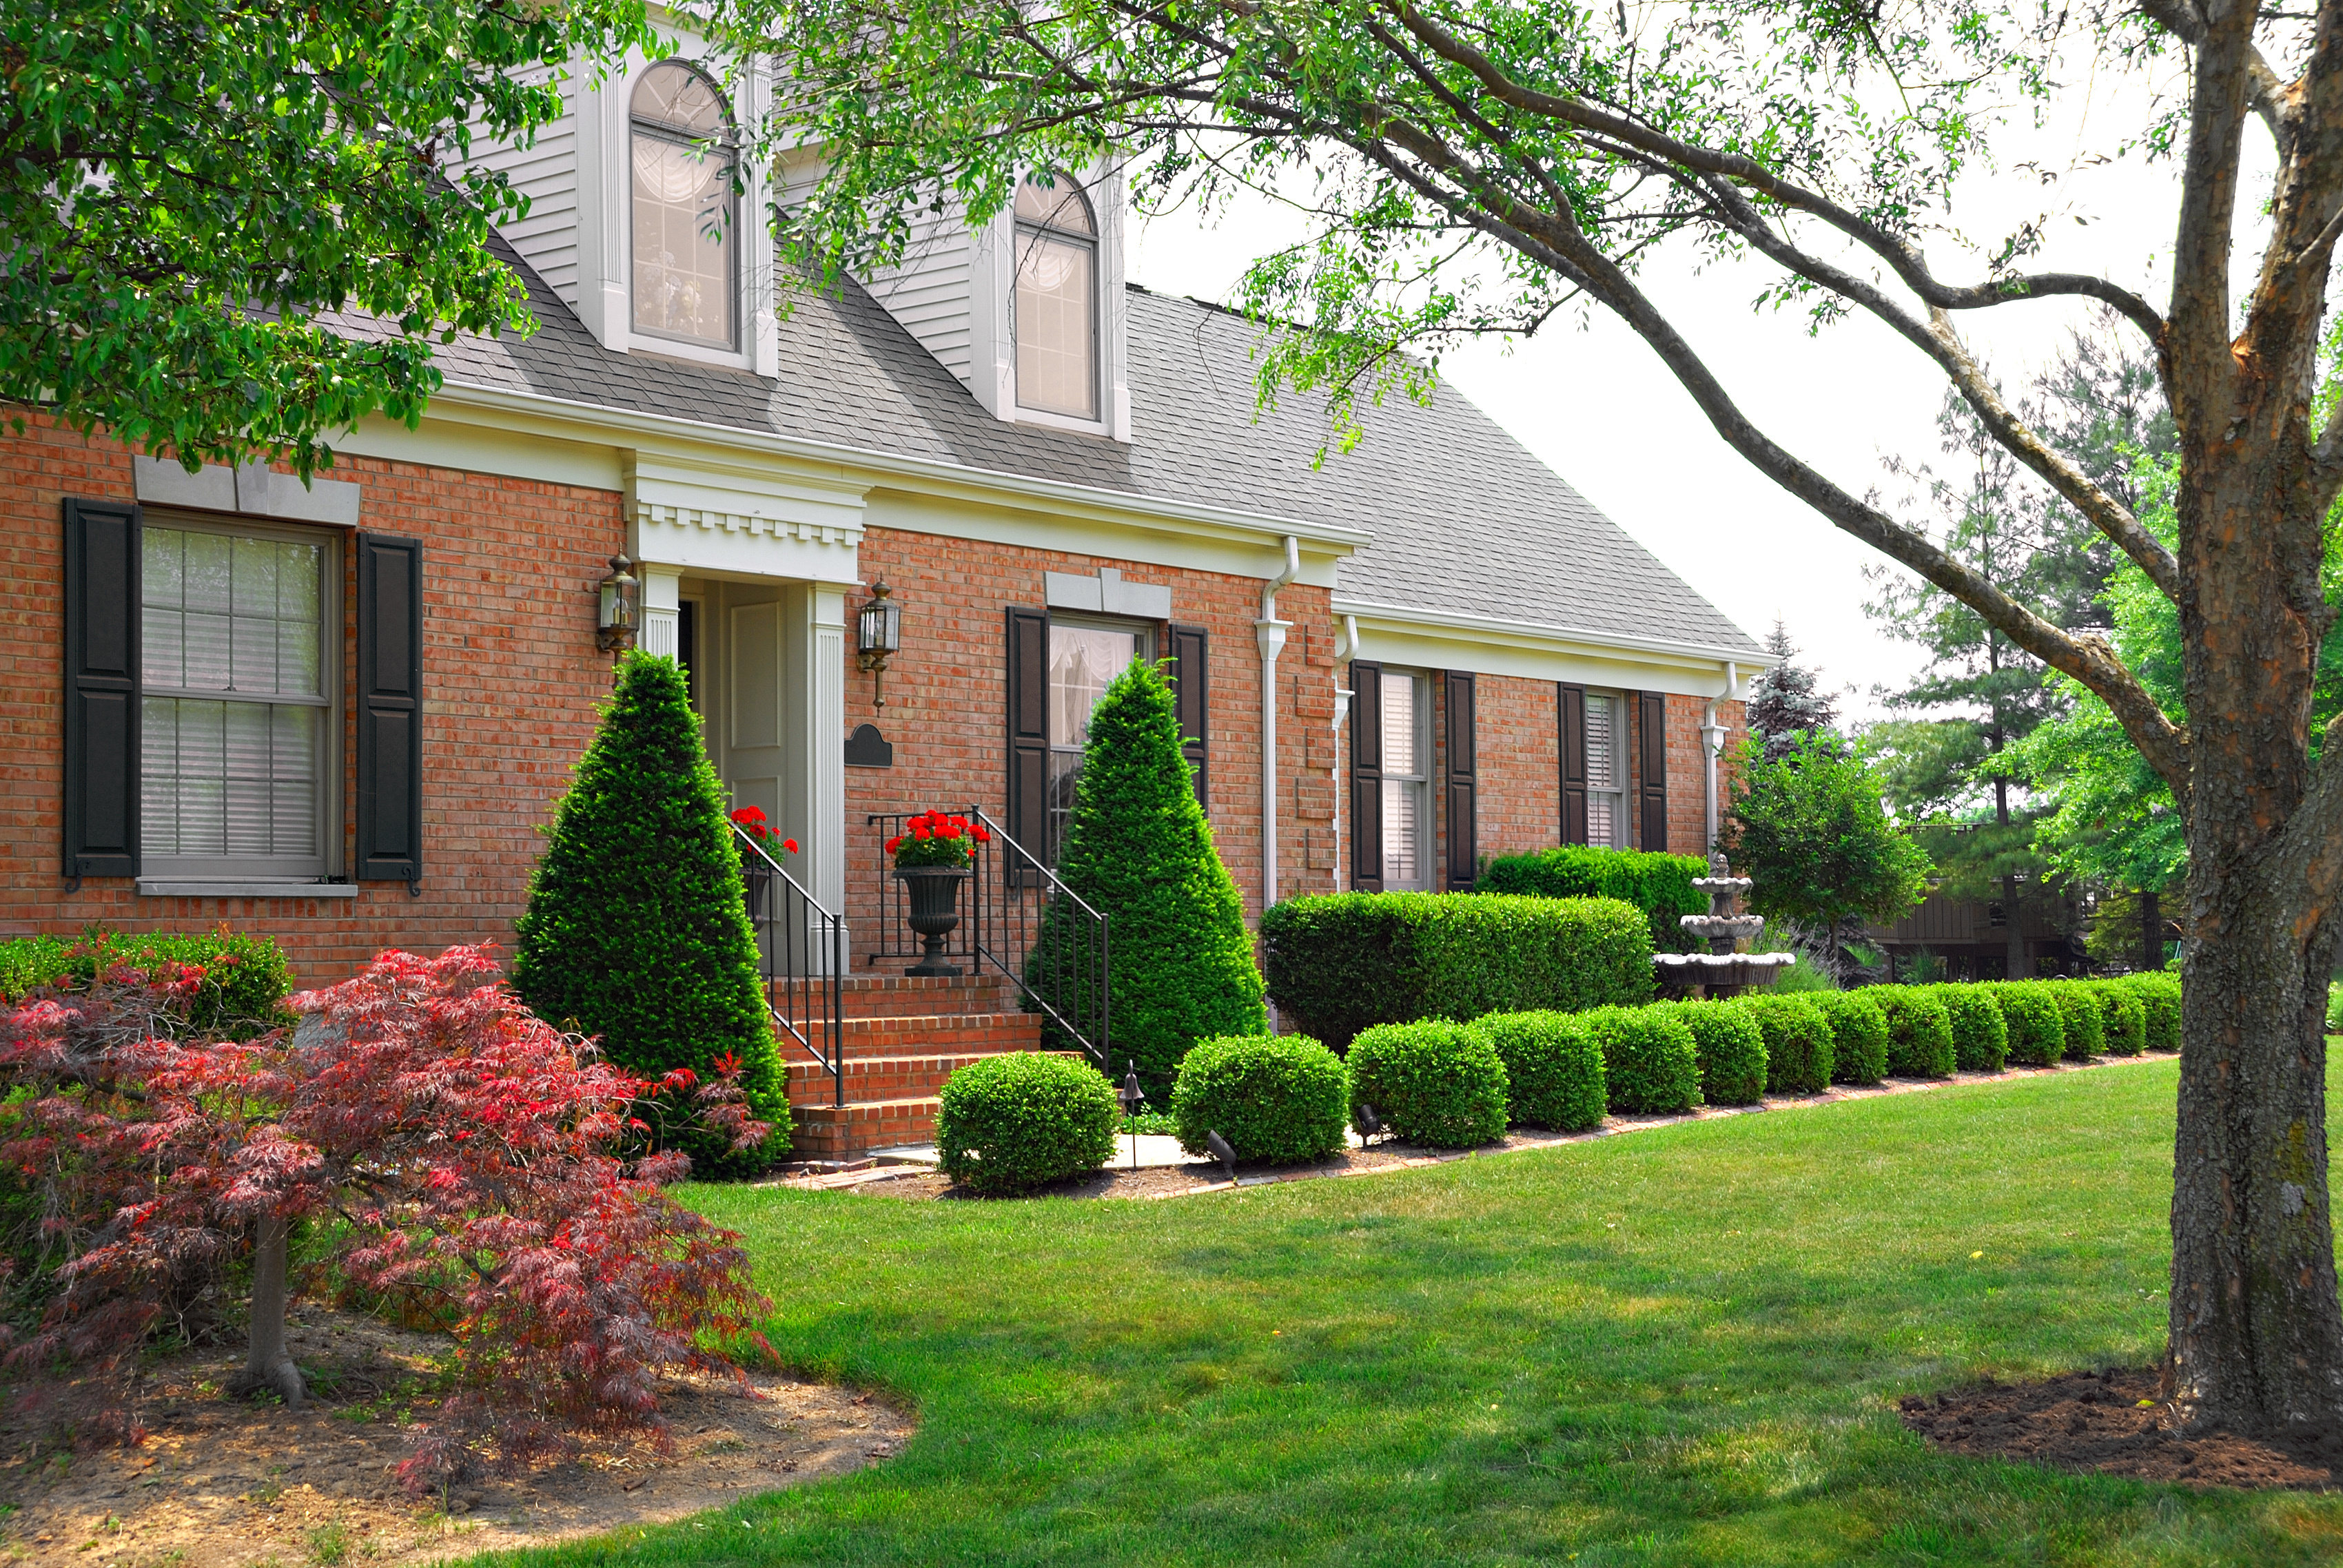 Do Trees Affect Your Home's Foundation? – Thomas Engineering Consultants